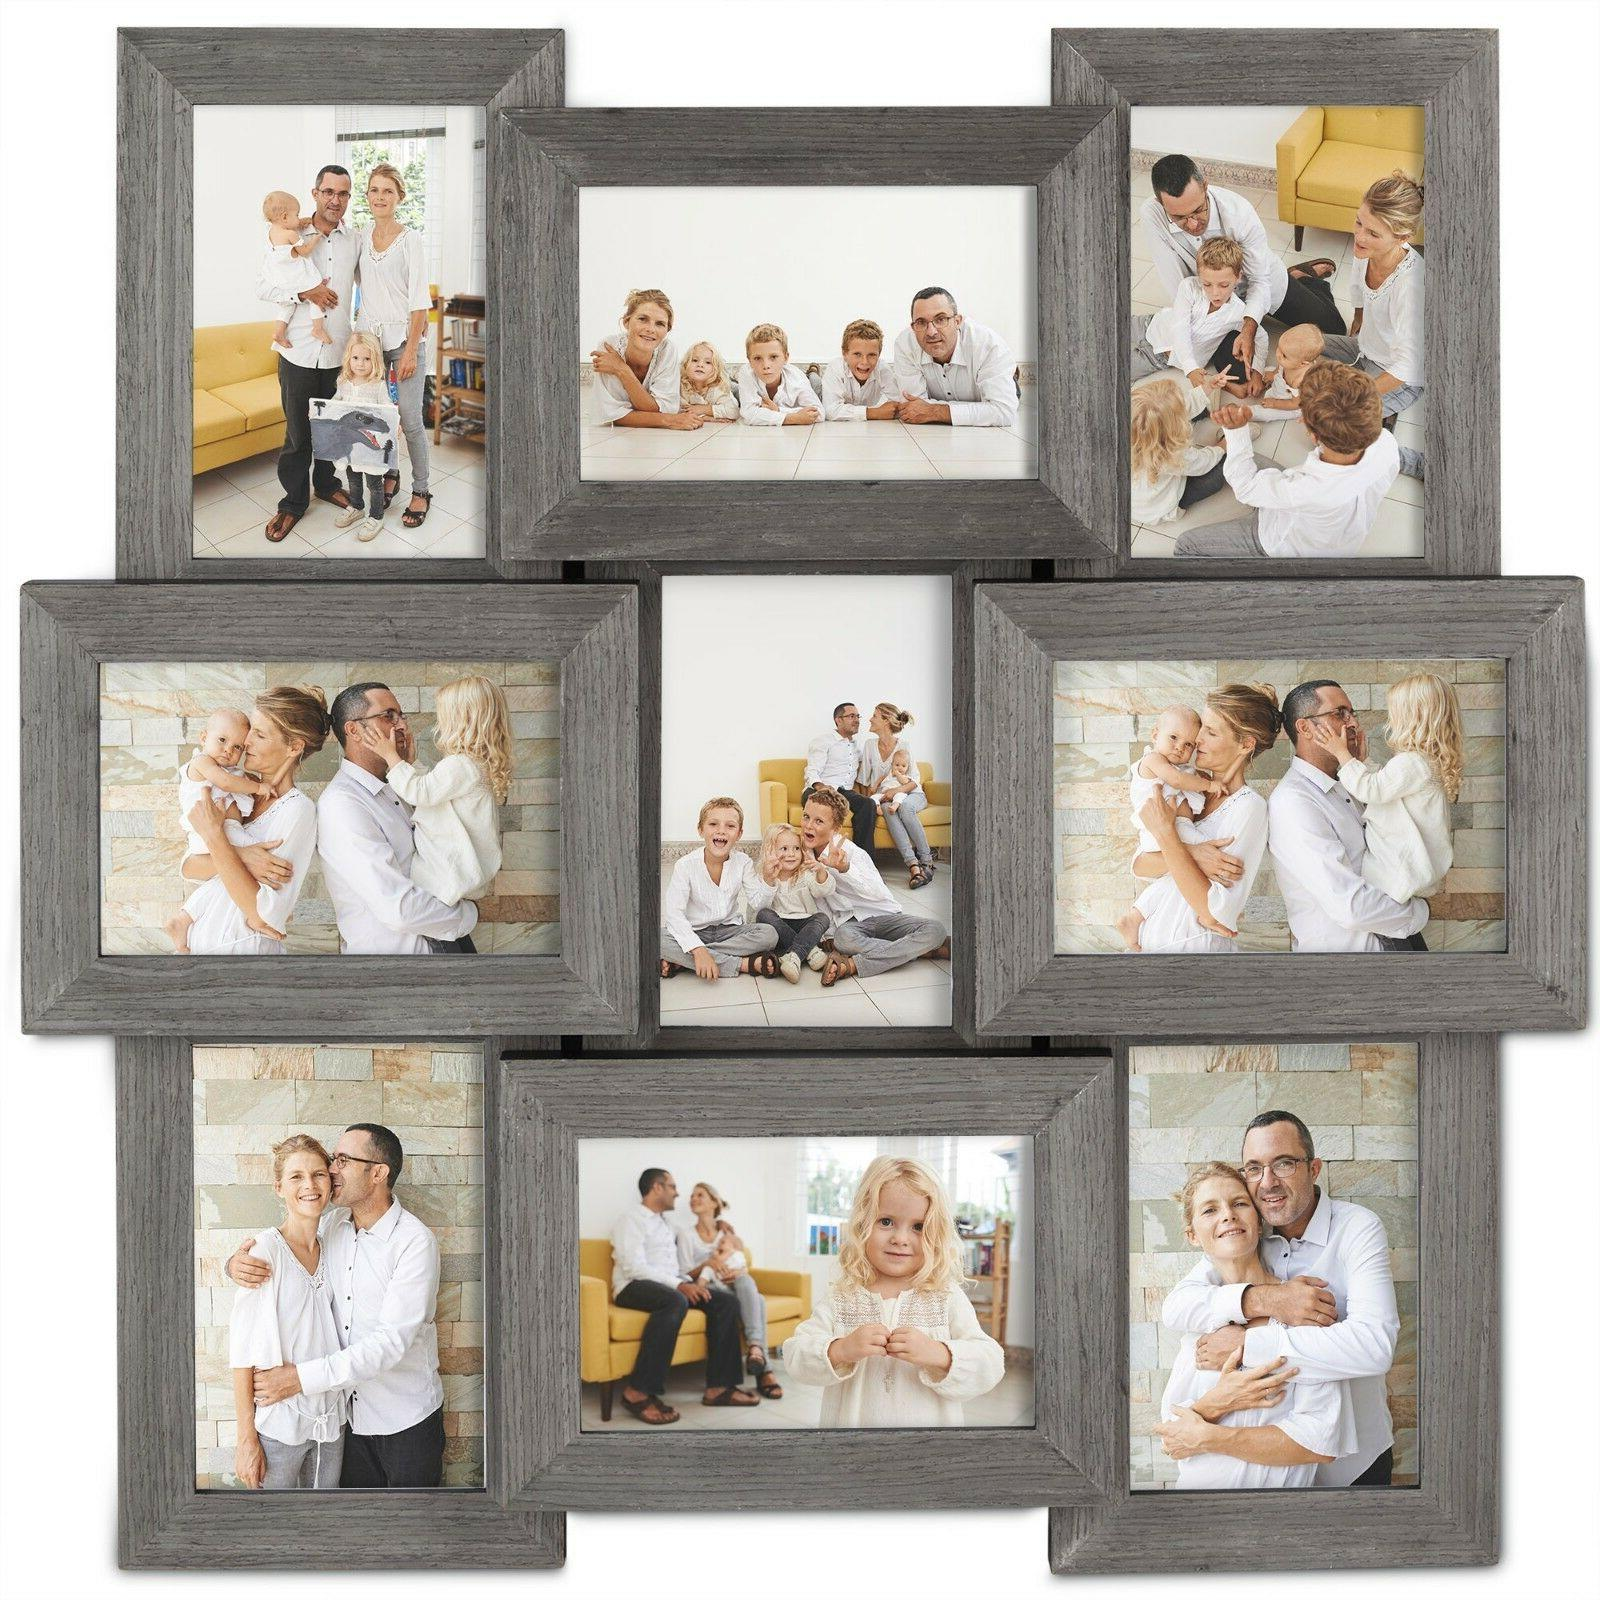 9x decorative collage picture frames for multiple